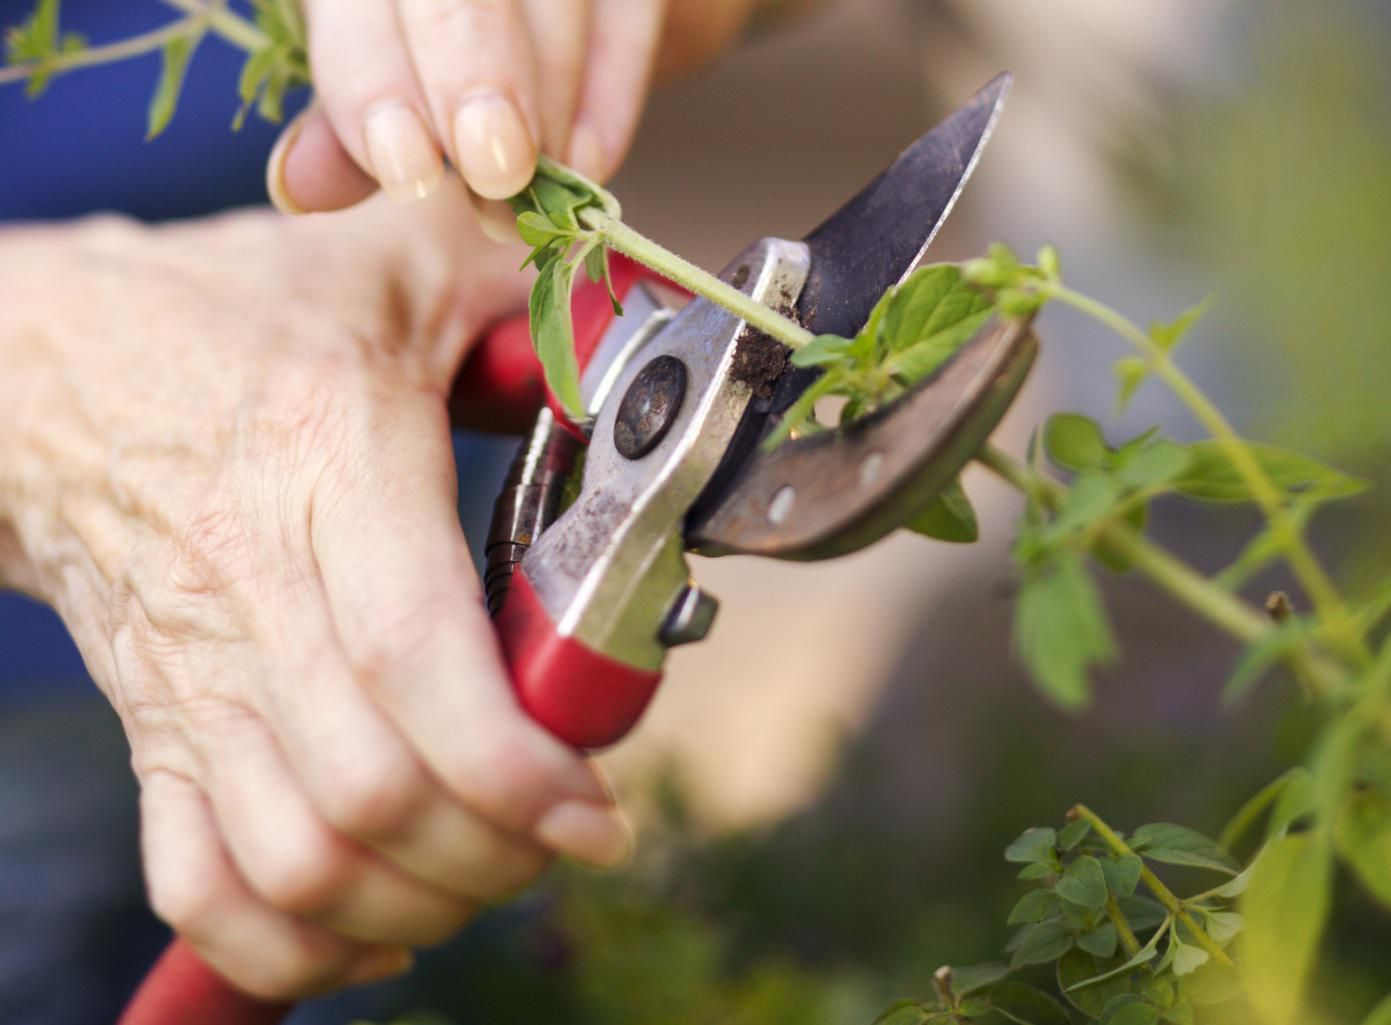 The garden tool review gardening tool reviews from a professional - How To Select Garden Hand Pruners Styles Cost Comfort Gardening Tips